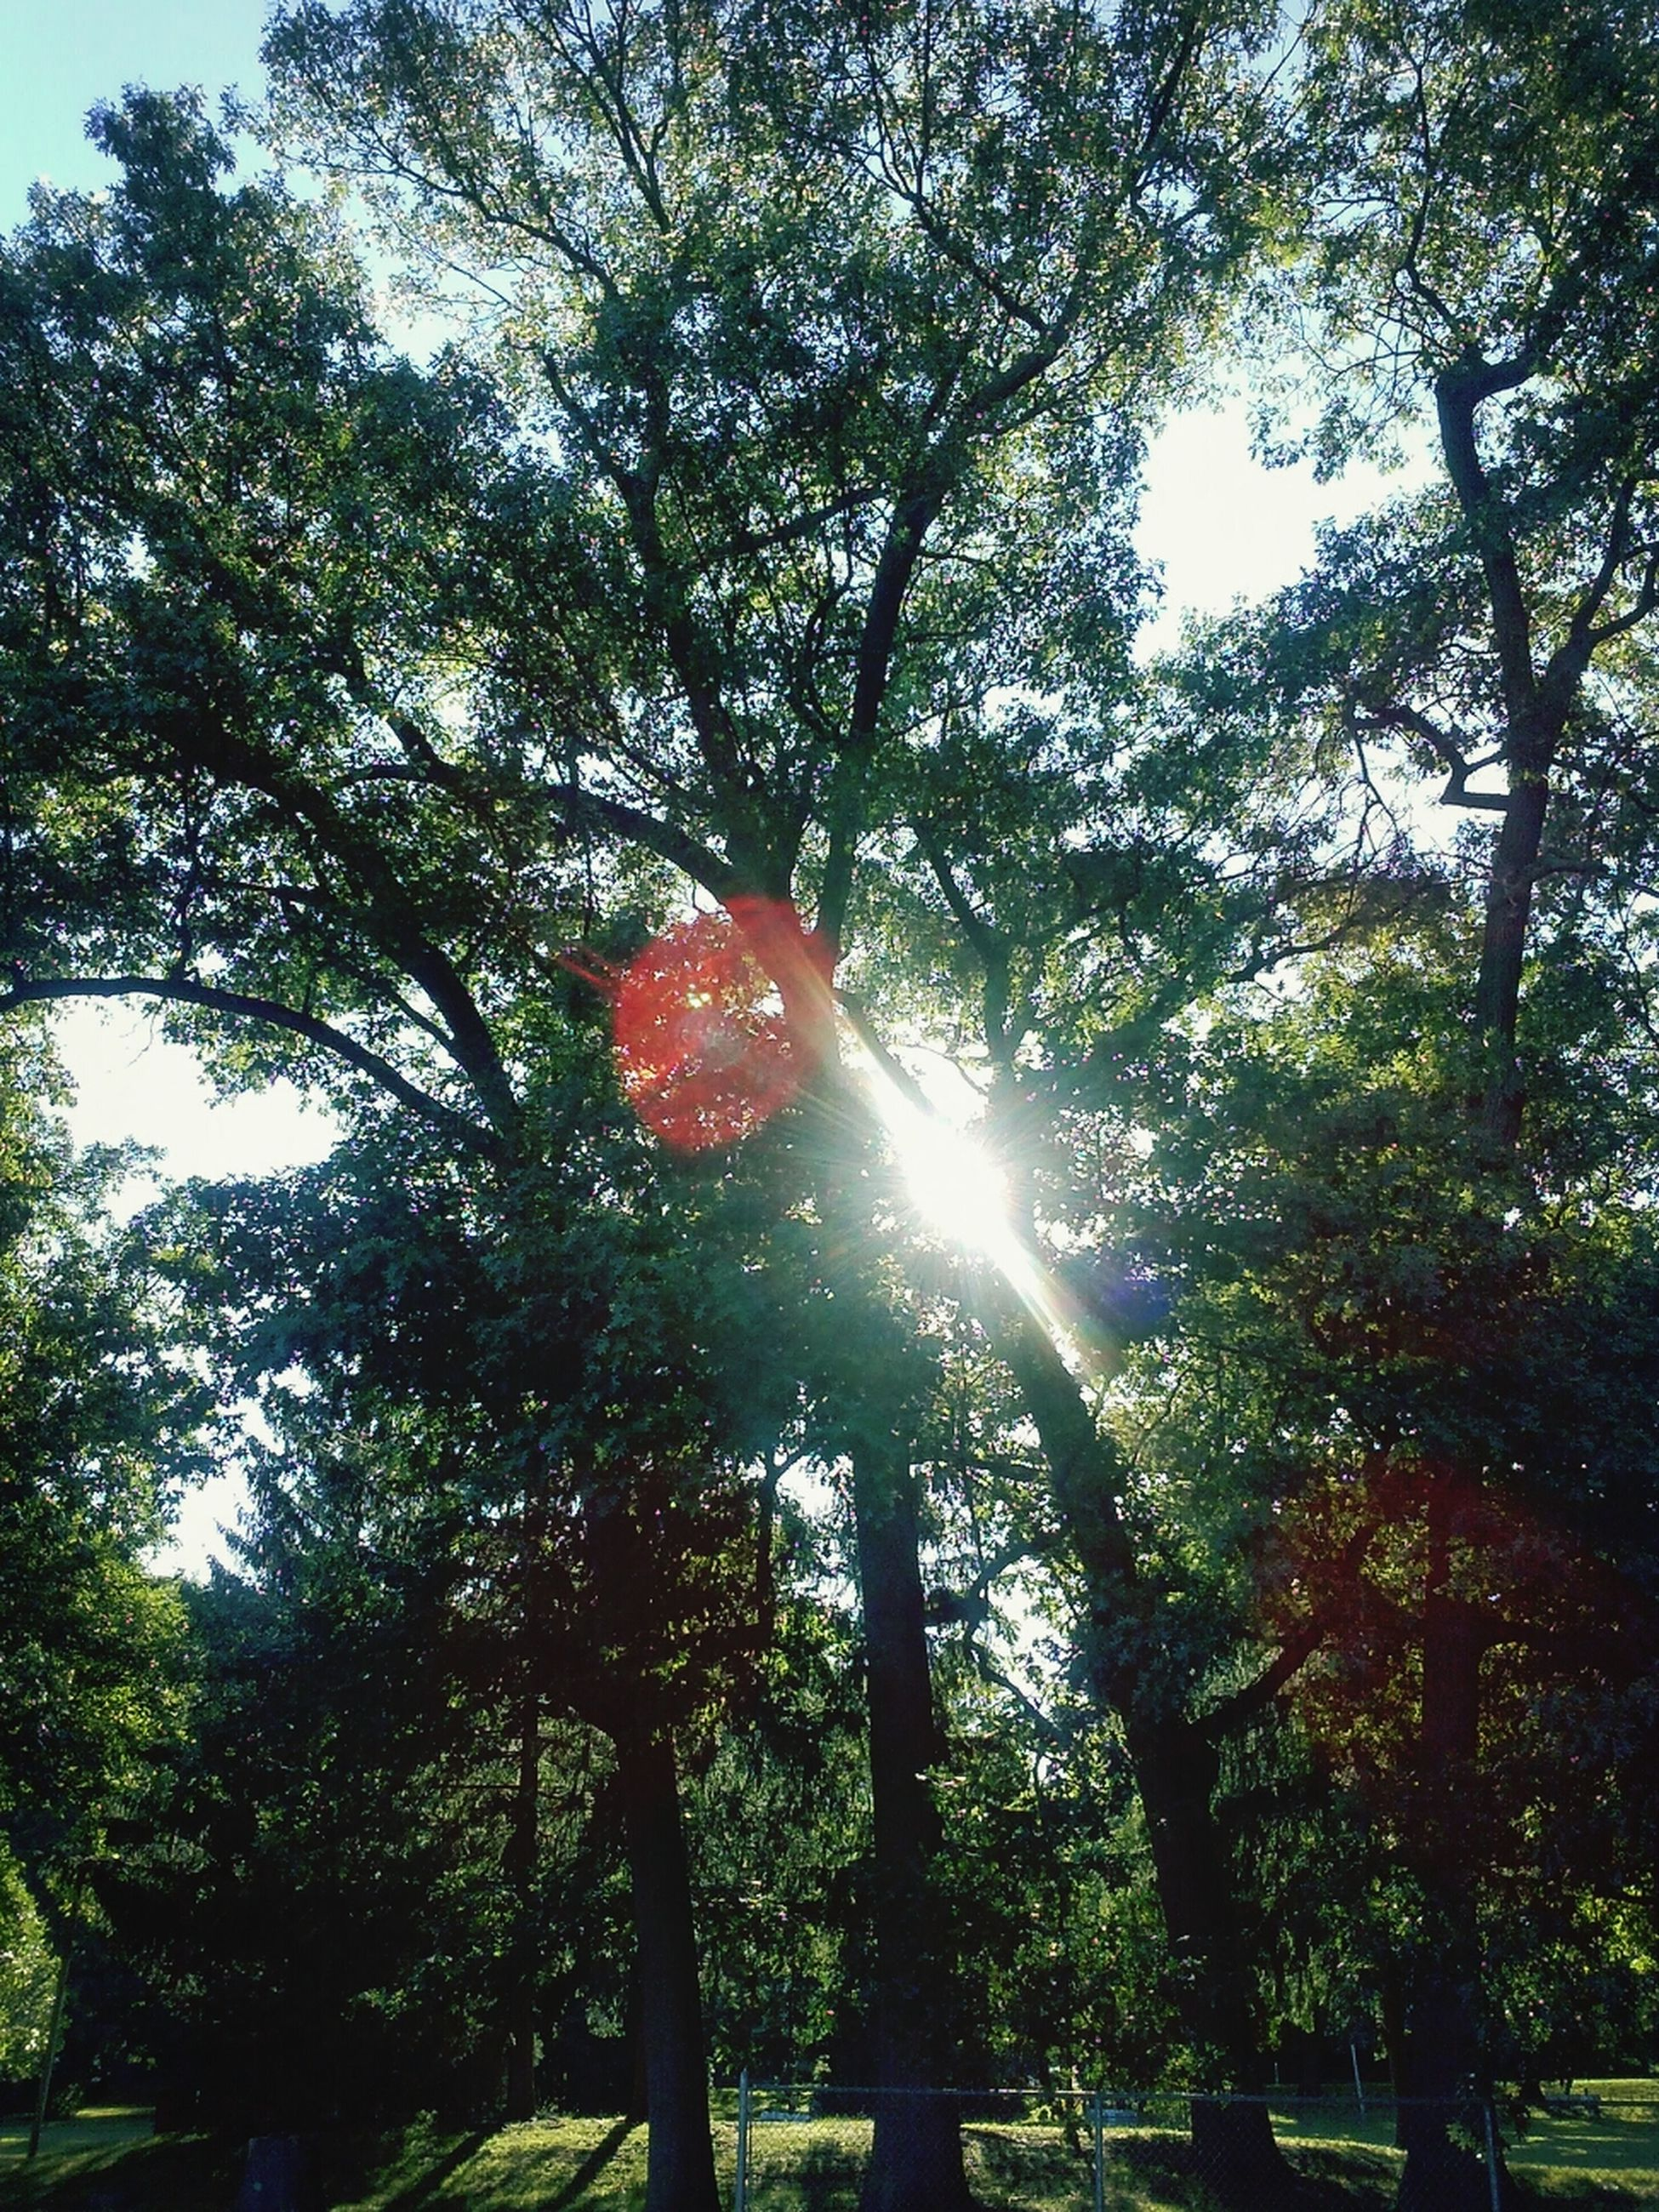 tree, sun, low angle view, growth, sunbeam, sunlight, lens flare, branch, nature, tranquility, beauty in nature, green color, forest, sky, day, outdoors, sunny, back lit, no people, scenics